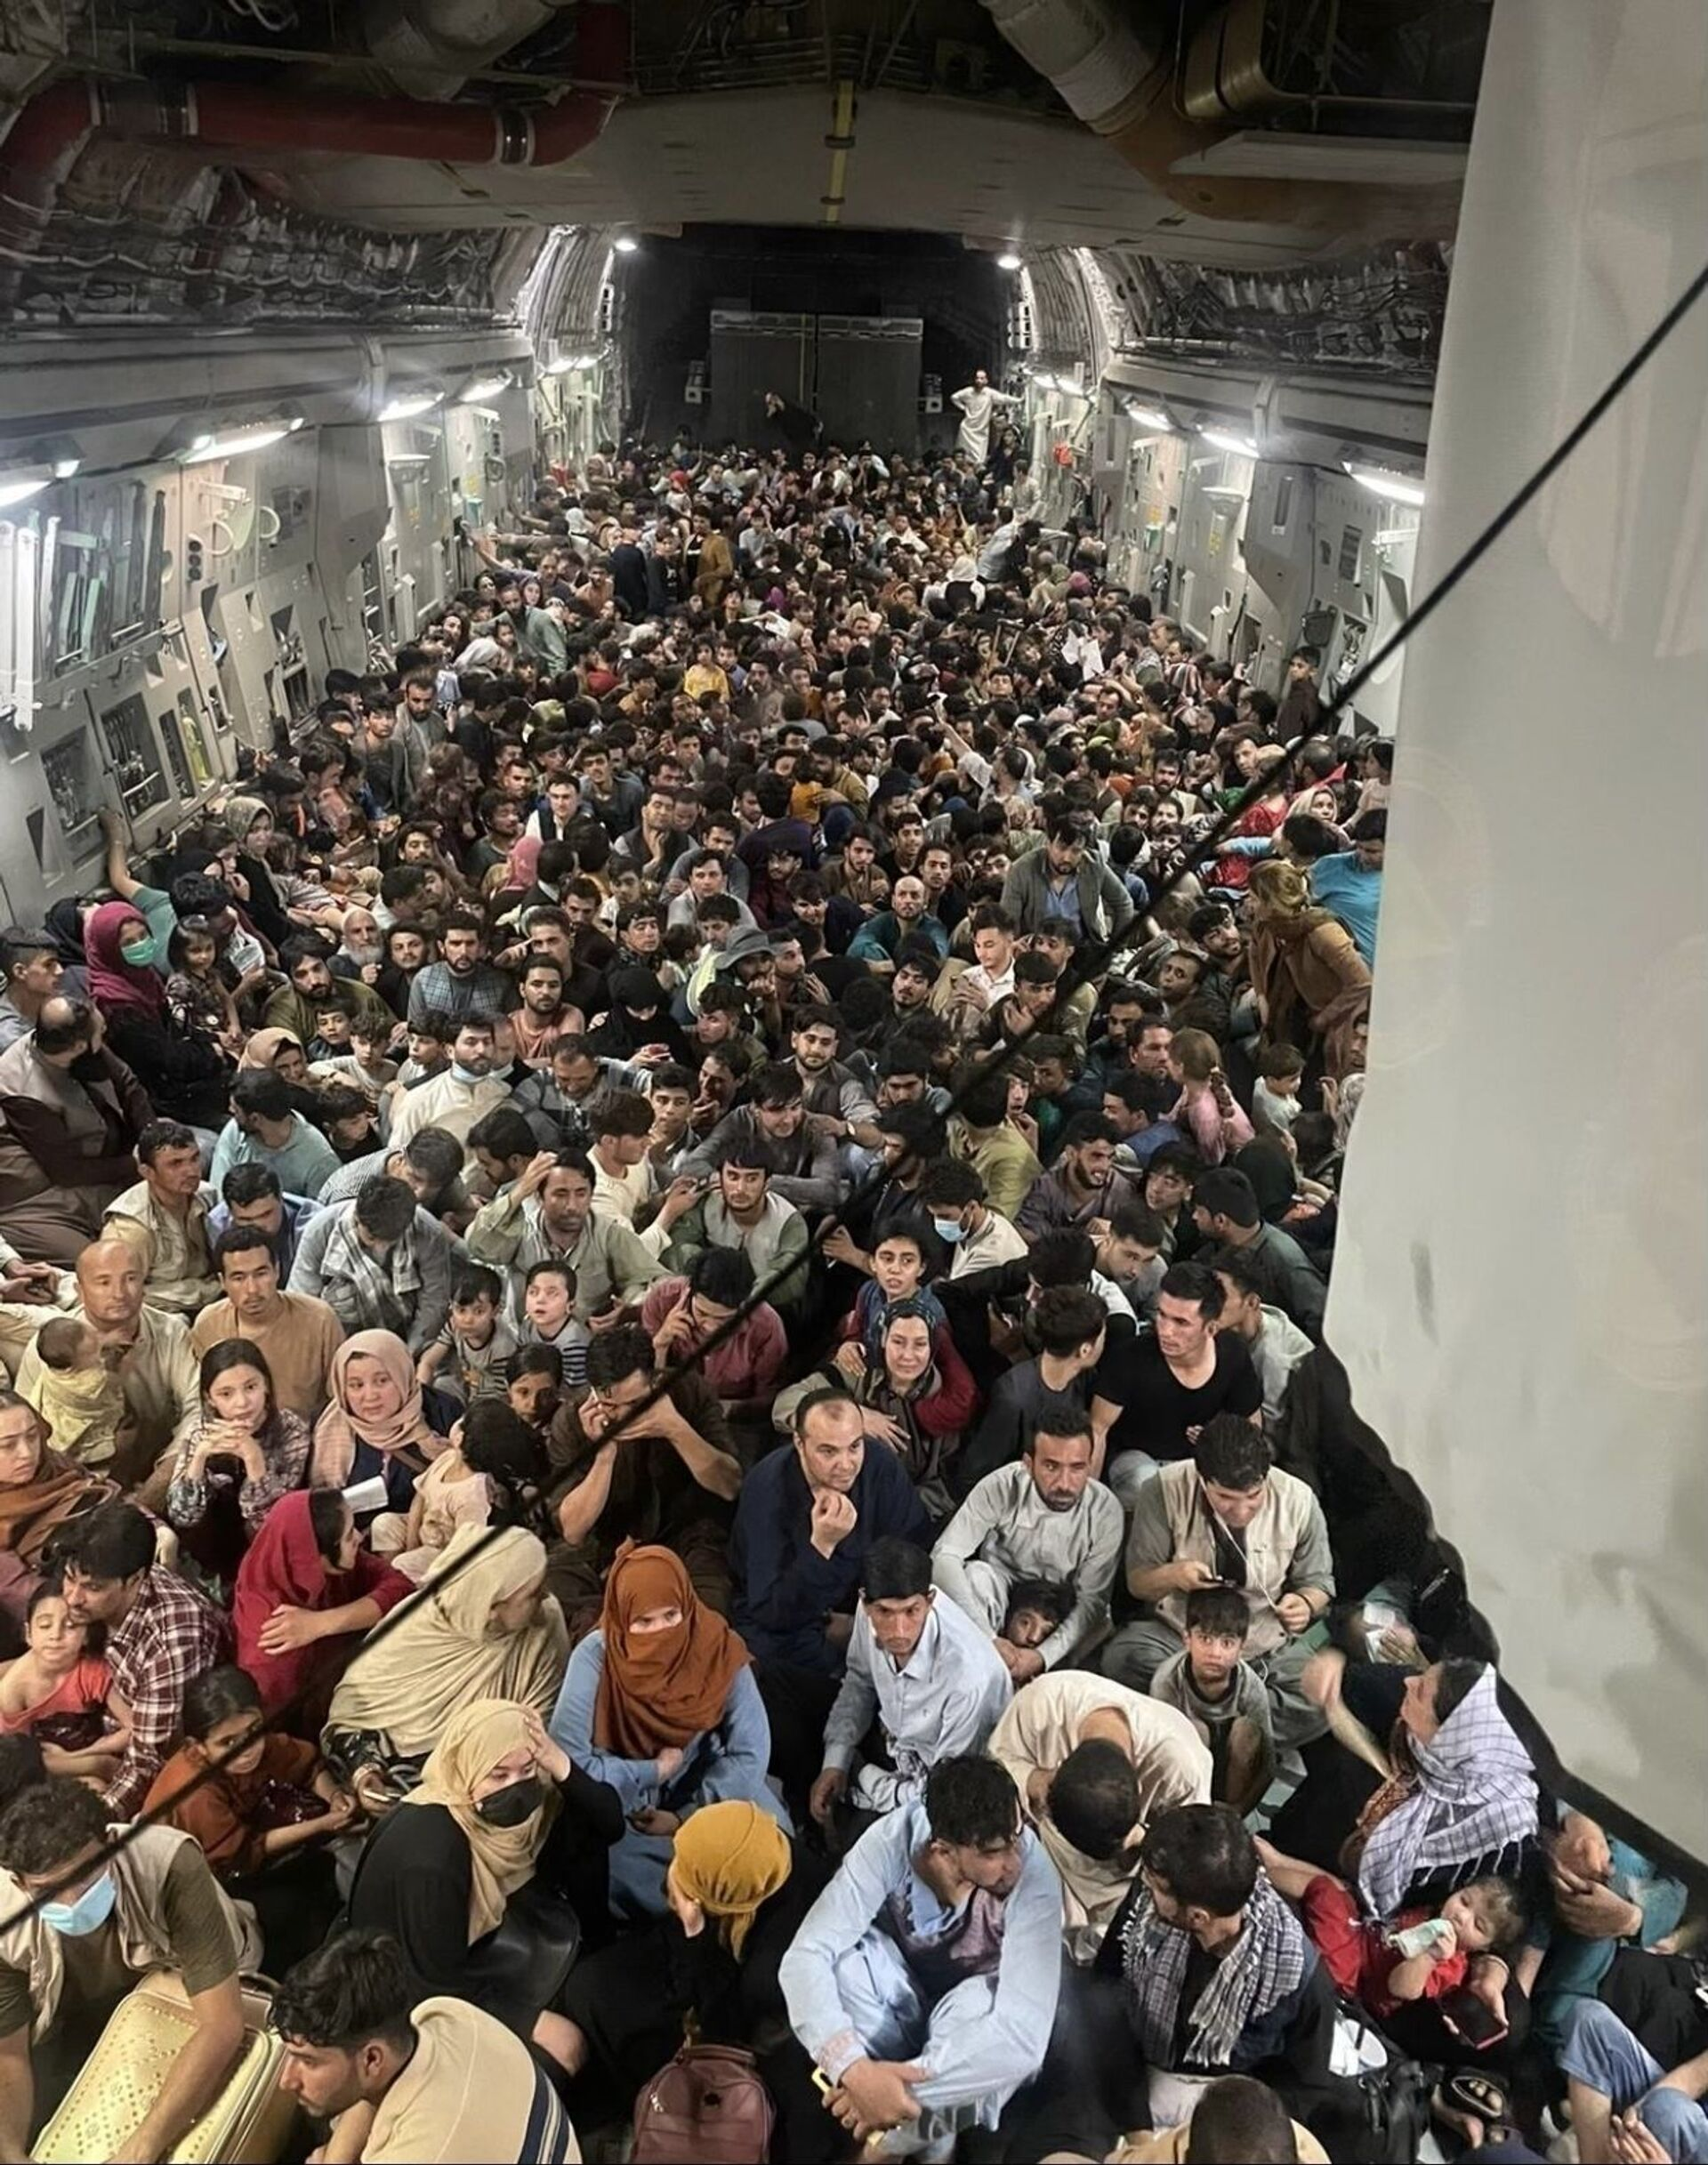 A U.S. Air Force C-17 Globemaster III safely transported approximately 640 Afghan citizens from Hamid Karzai International Airport Aug. 15, 2021. - Sputnik International, 1920, 07.09.2021